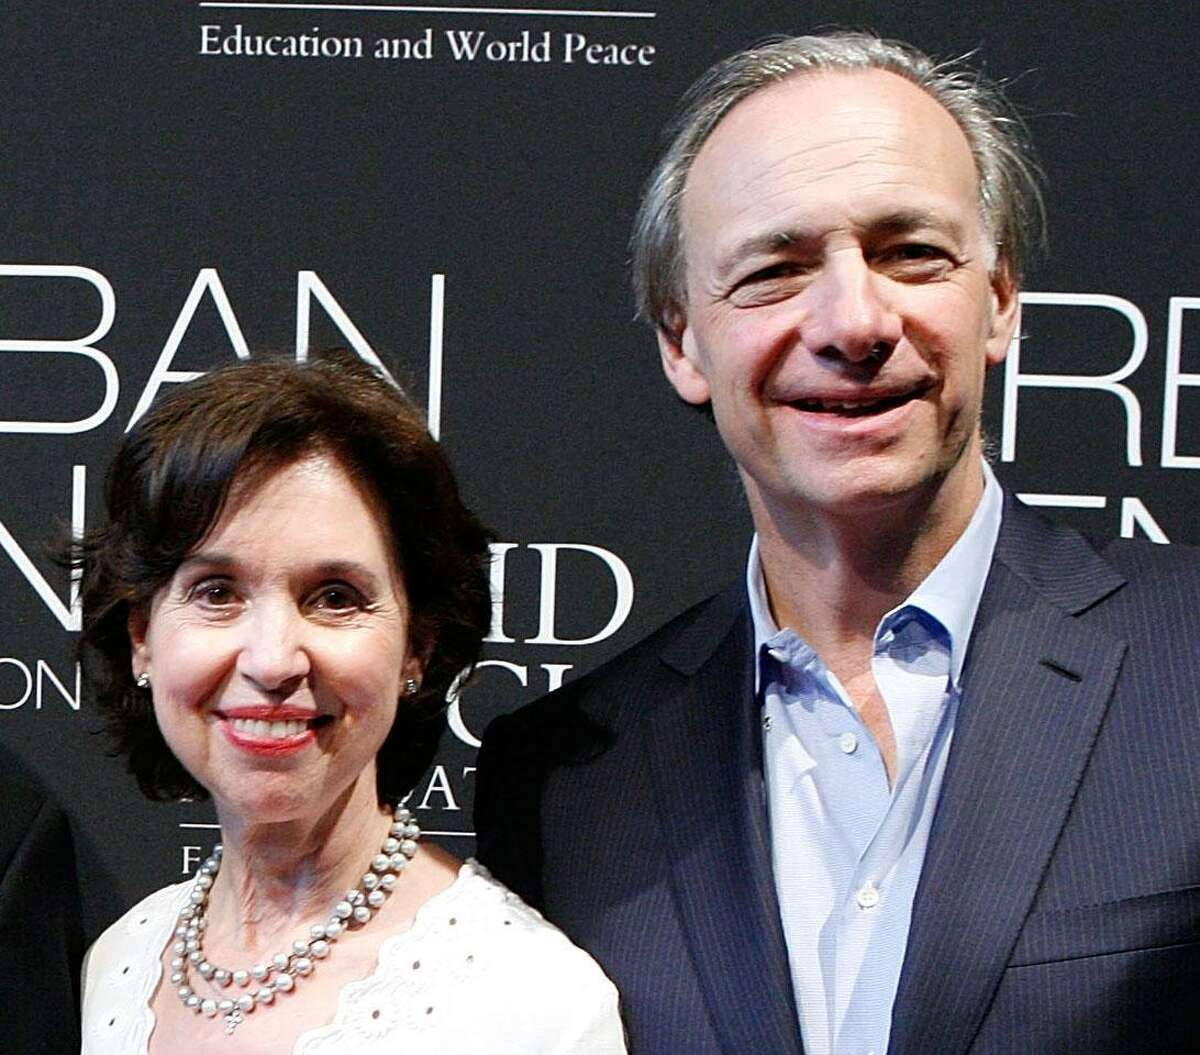 Barbara and Ray Dalio attend the Operation Warrior Wellness launch at the Urban Zen Center At Stephan Weiss Studio on June 7, 2011 in New York City.